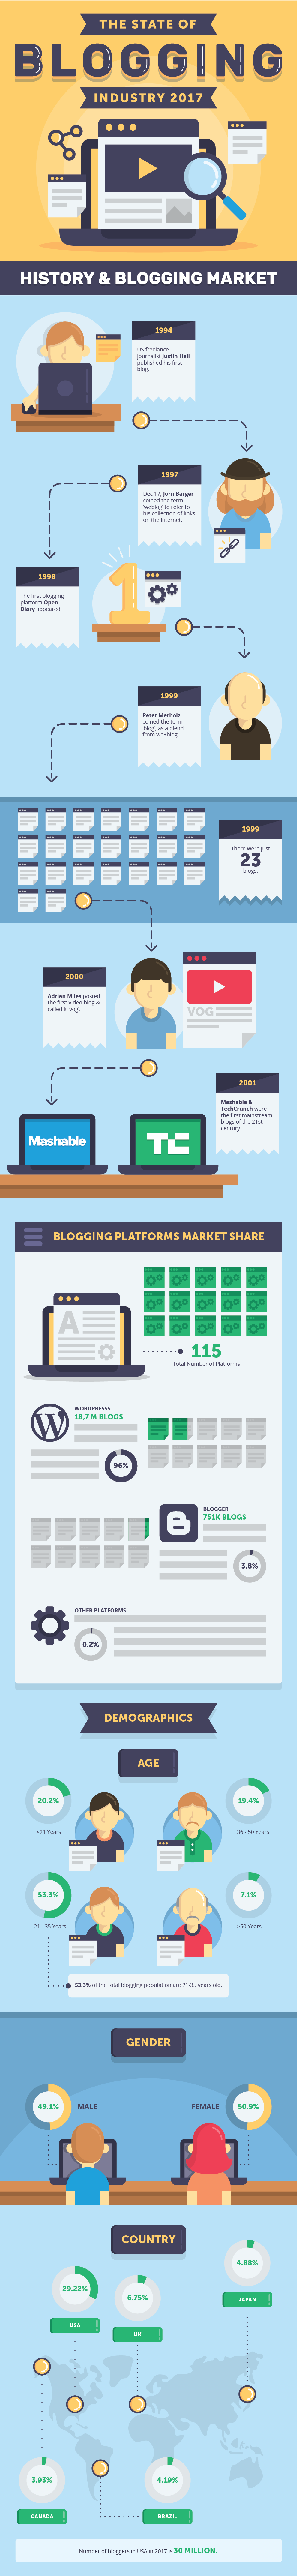 infographic state of blogging industry best platforms blog